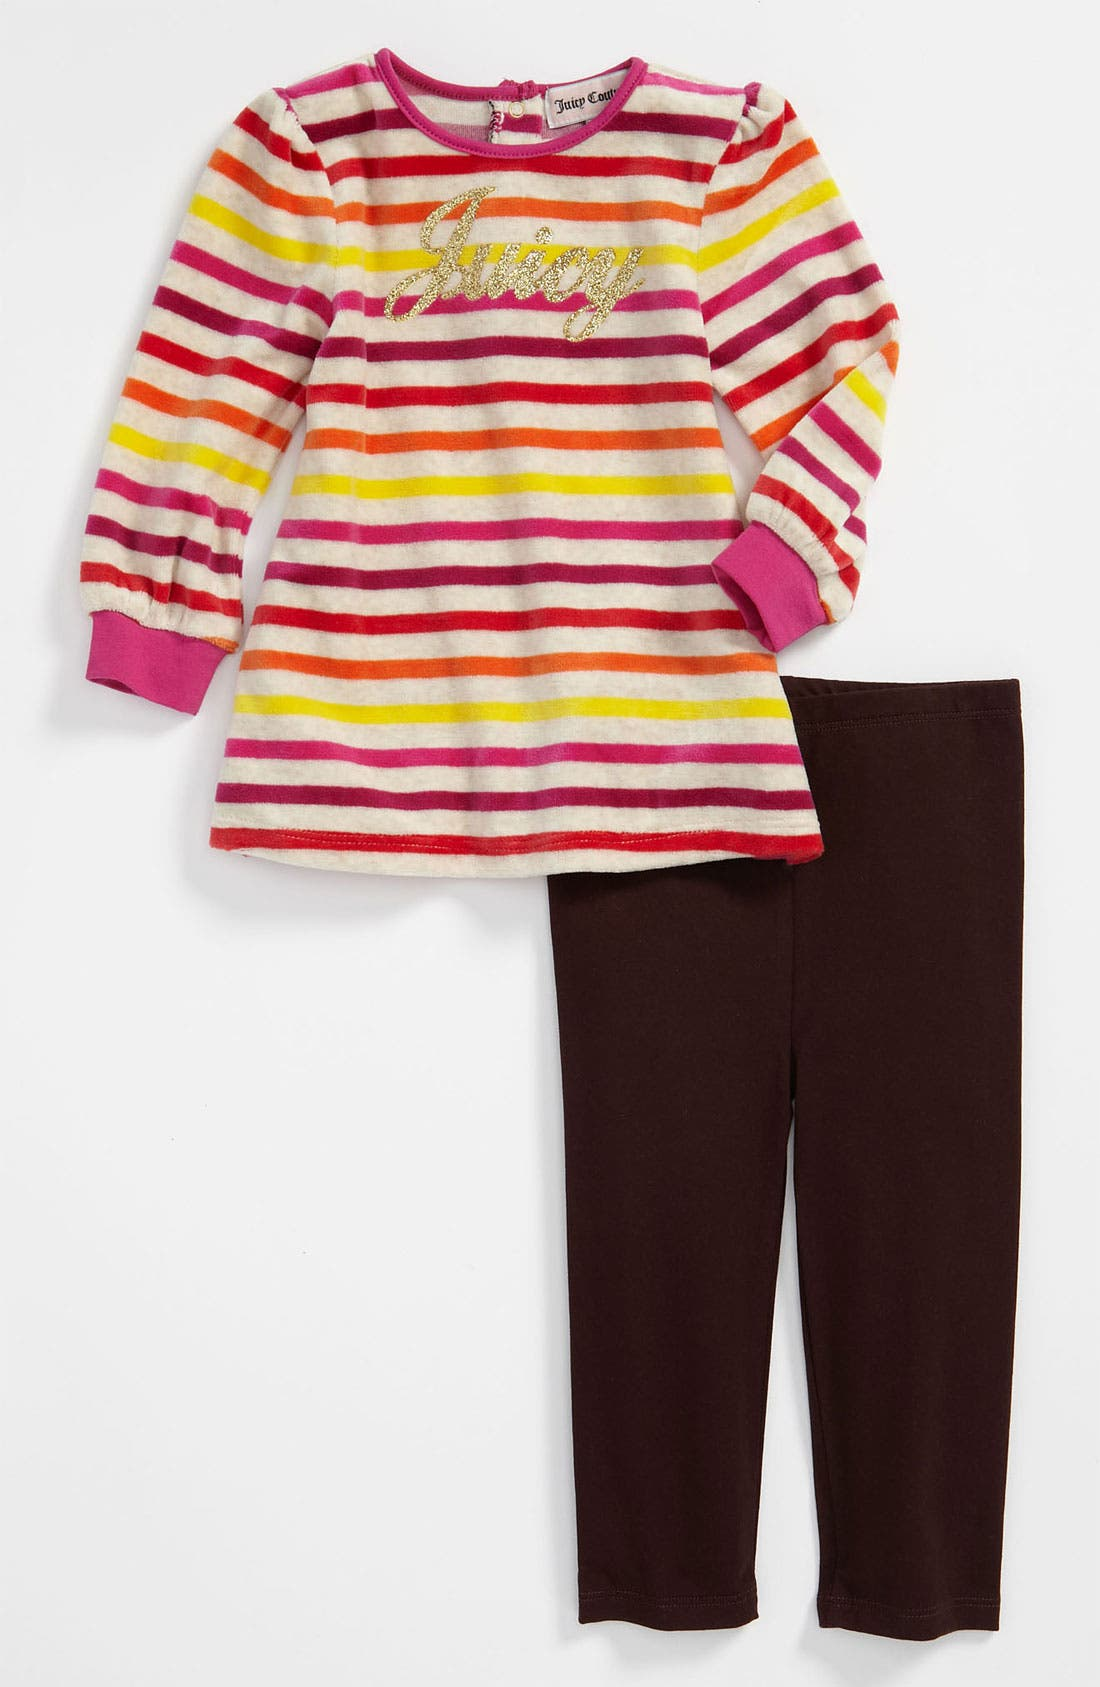 Alternate Image 1 Selected - Juicy Couture Tunic & Leggings (Infant)